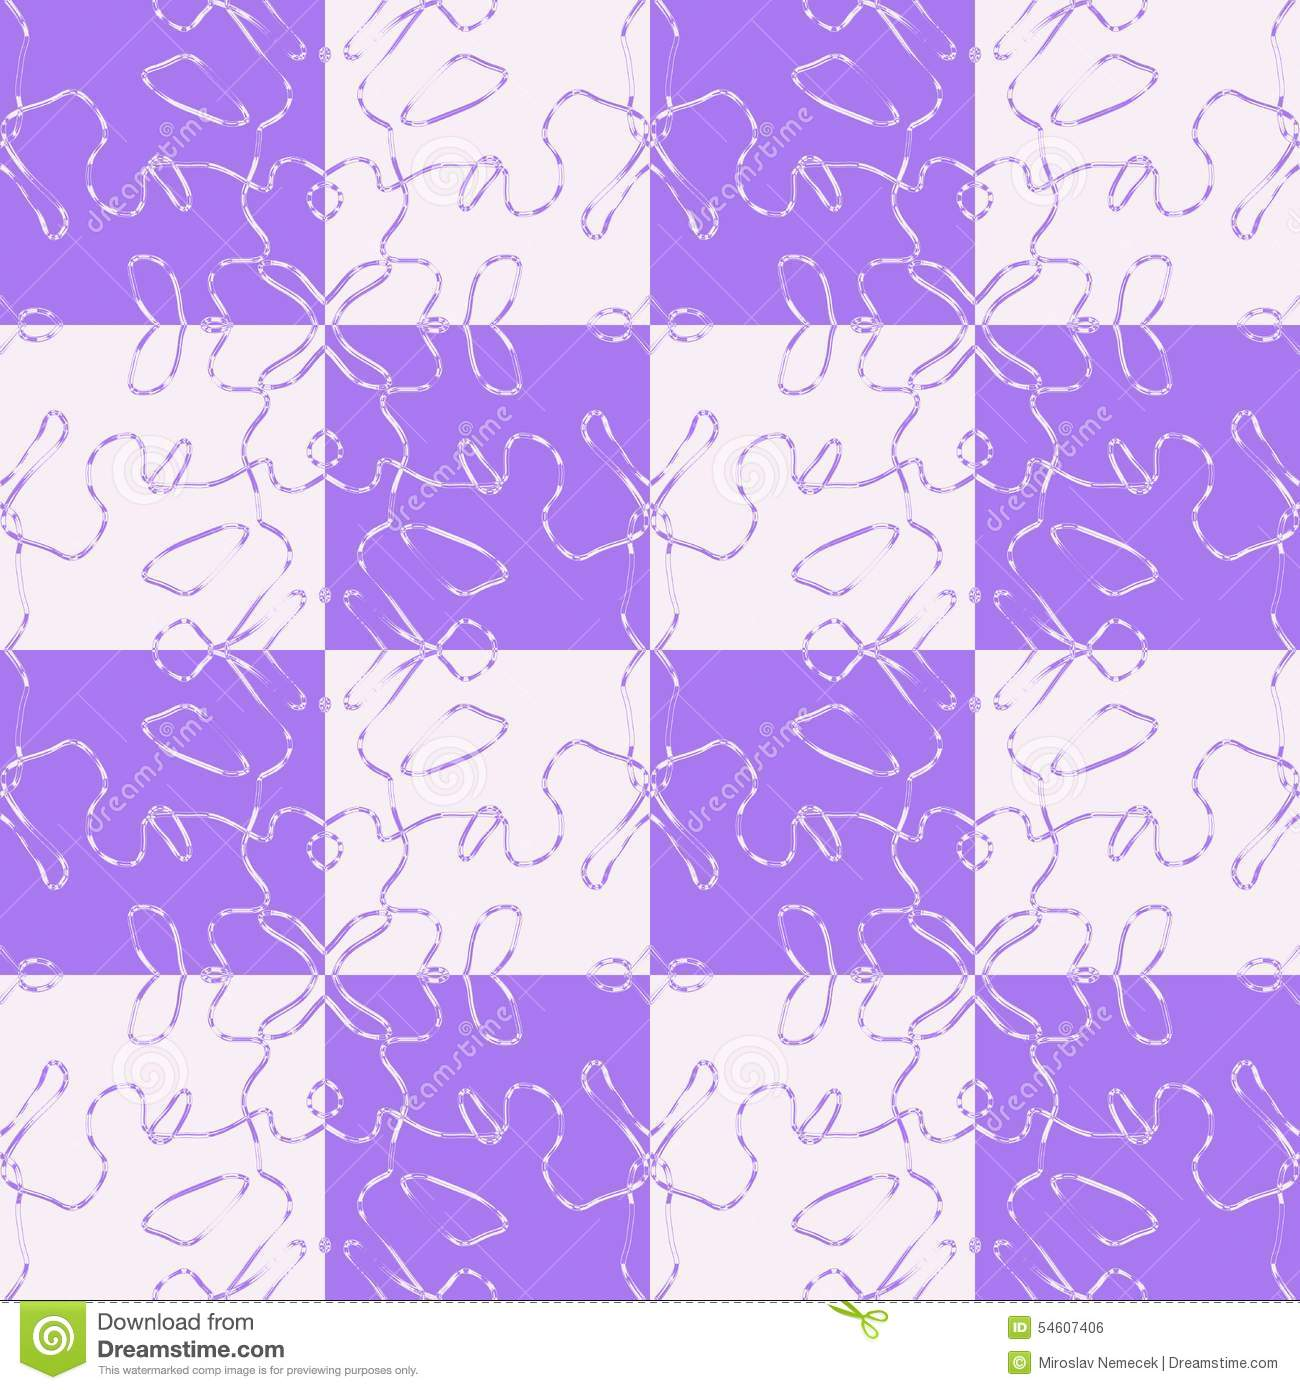 generated seamless tile background - photo #13